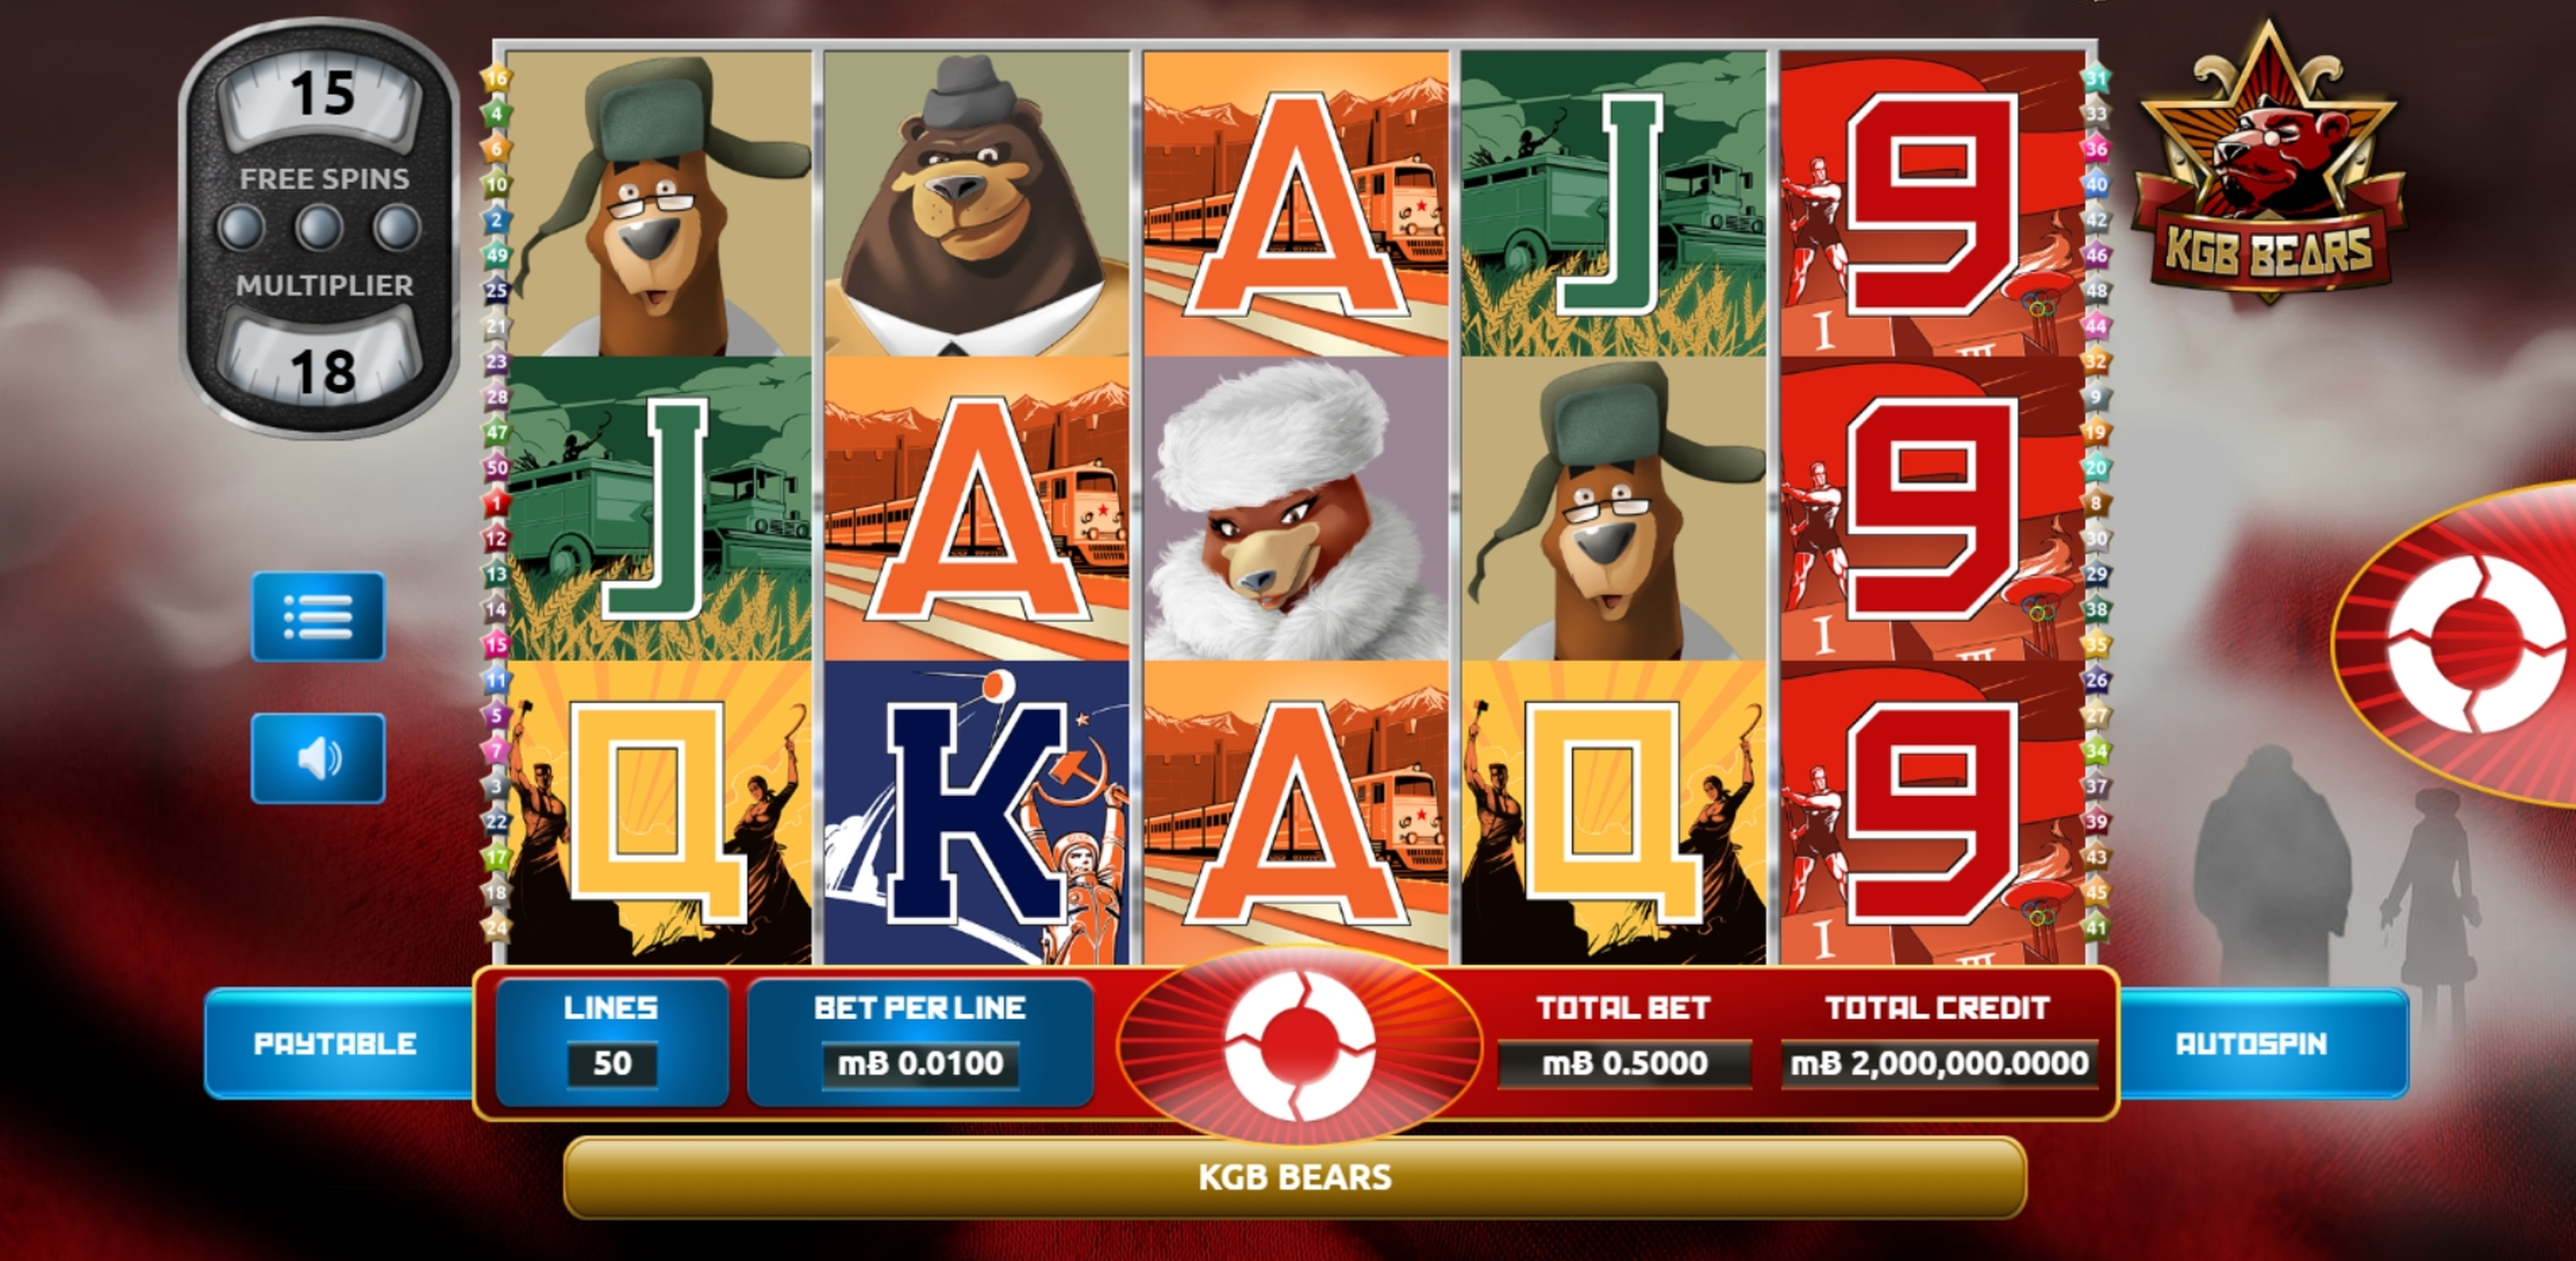 Reels in KGB Bears Slot Game by The Games Company